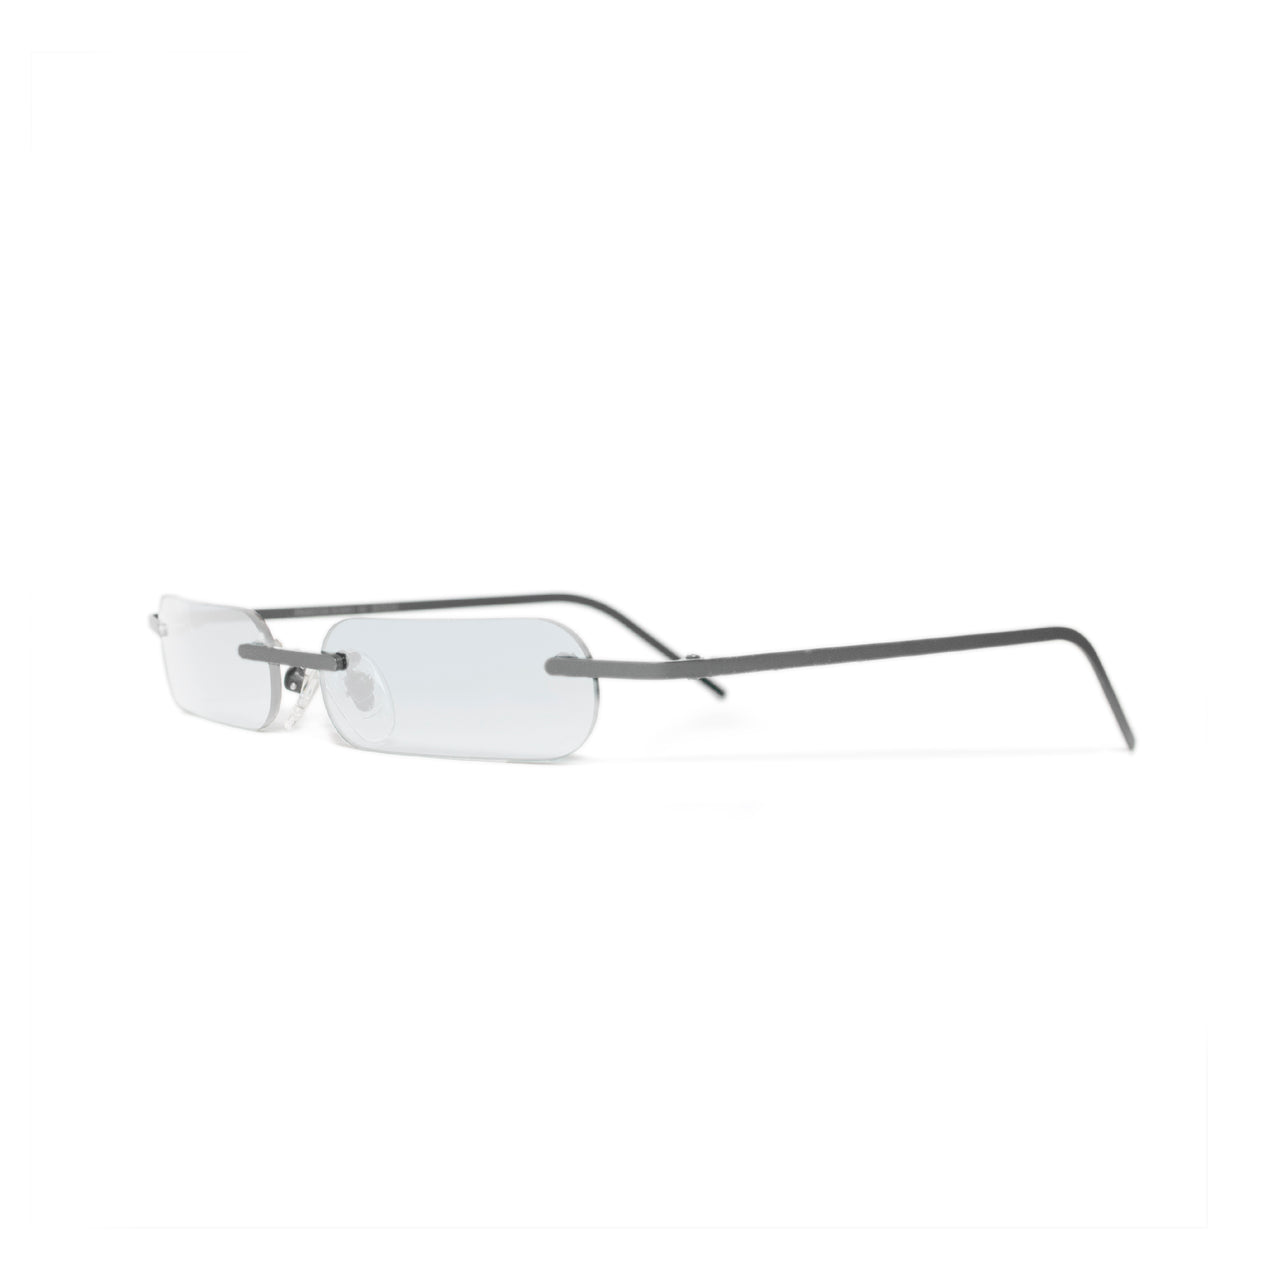 Metal. Polished Silver. Clear Lens. - BLYSZAK eyewear eyewear - eyewear, optical, sunglasses